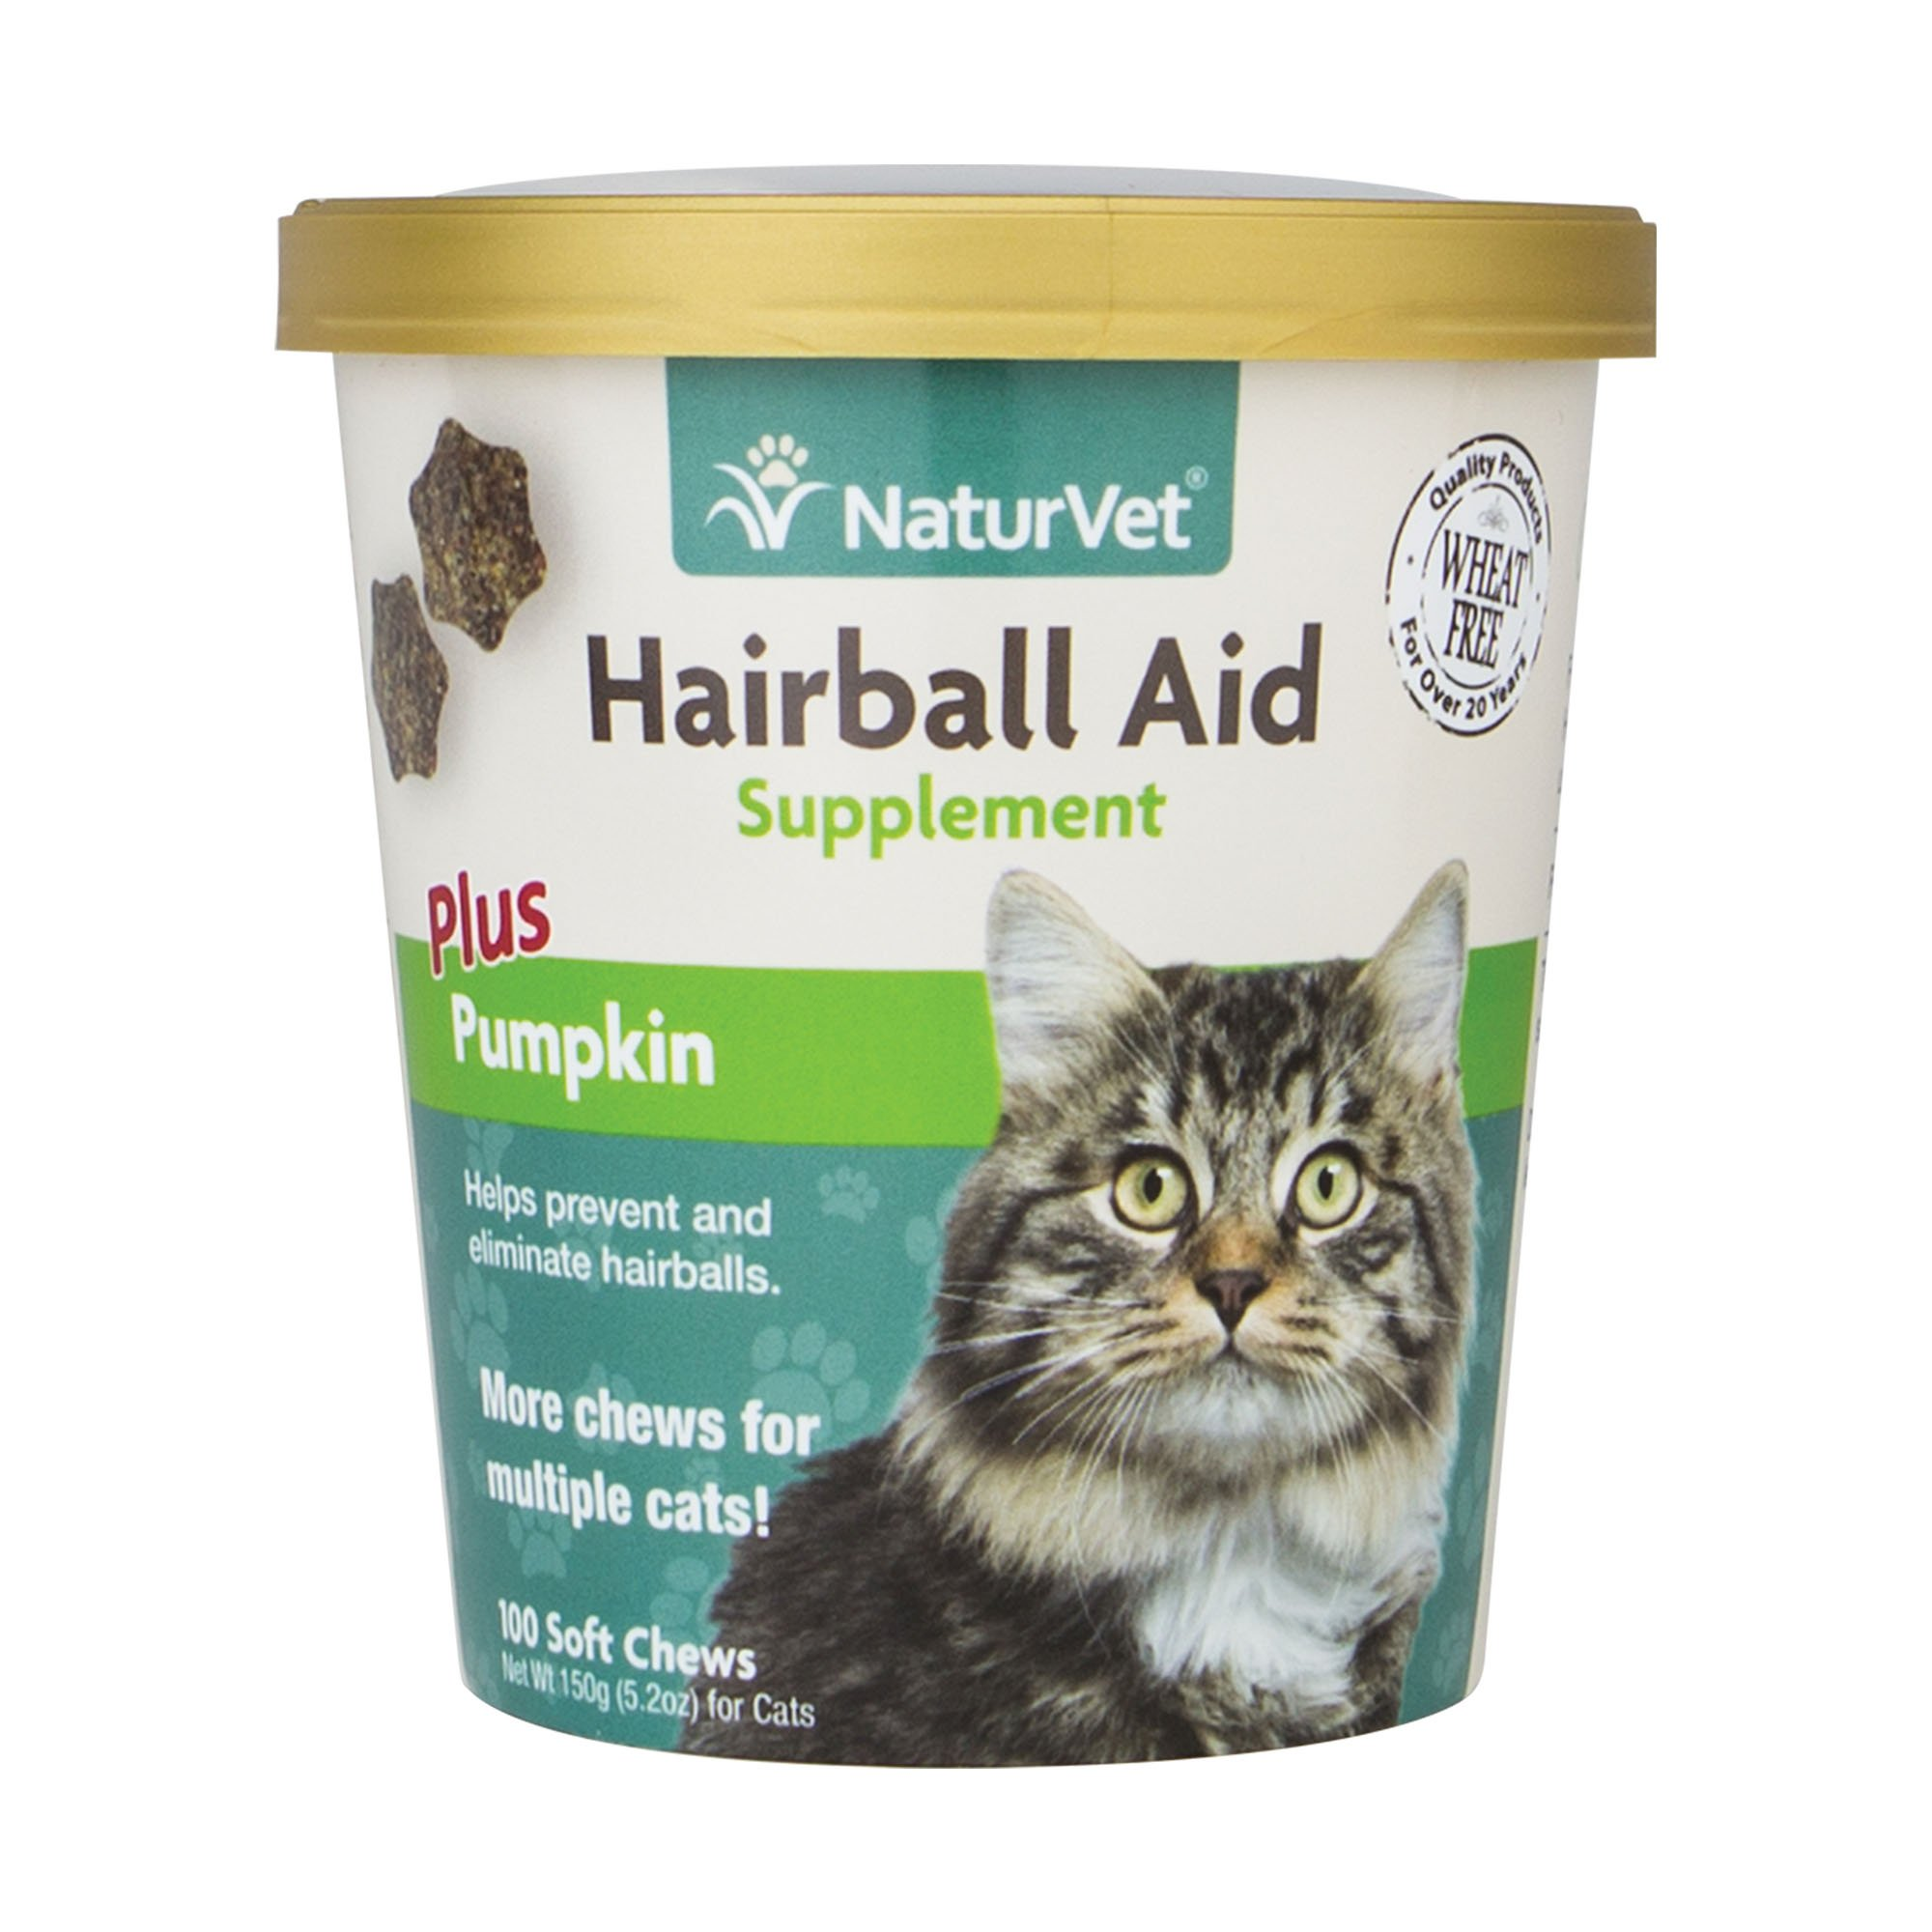 NaturVet Hairball Aid Plus Pumpkin for Cats, 100 ct Soft Chews, Made in USA